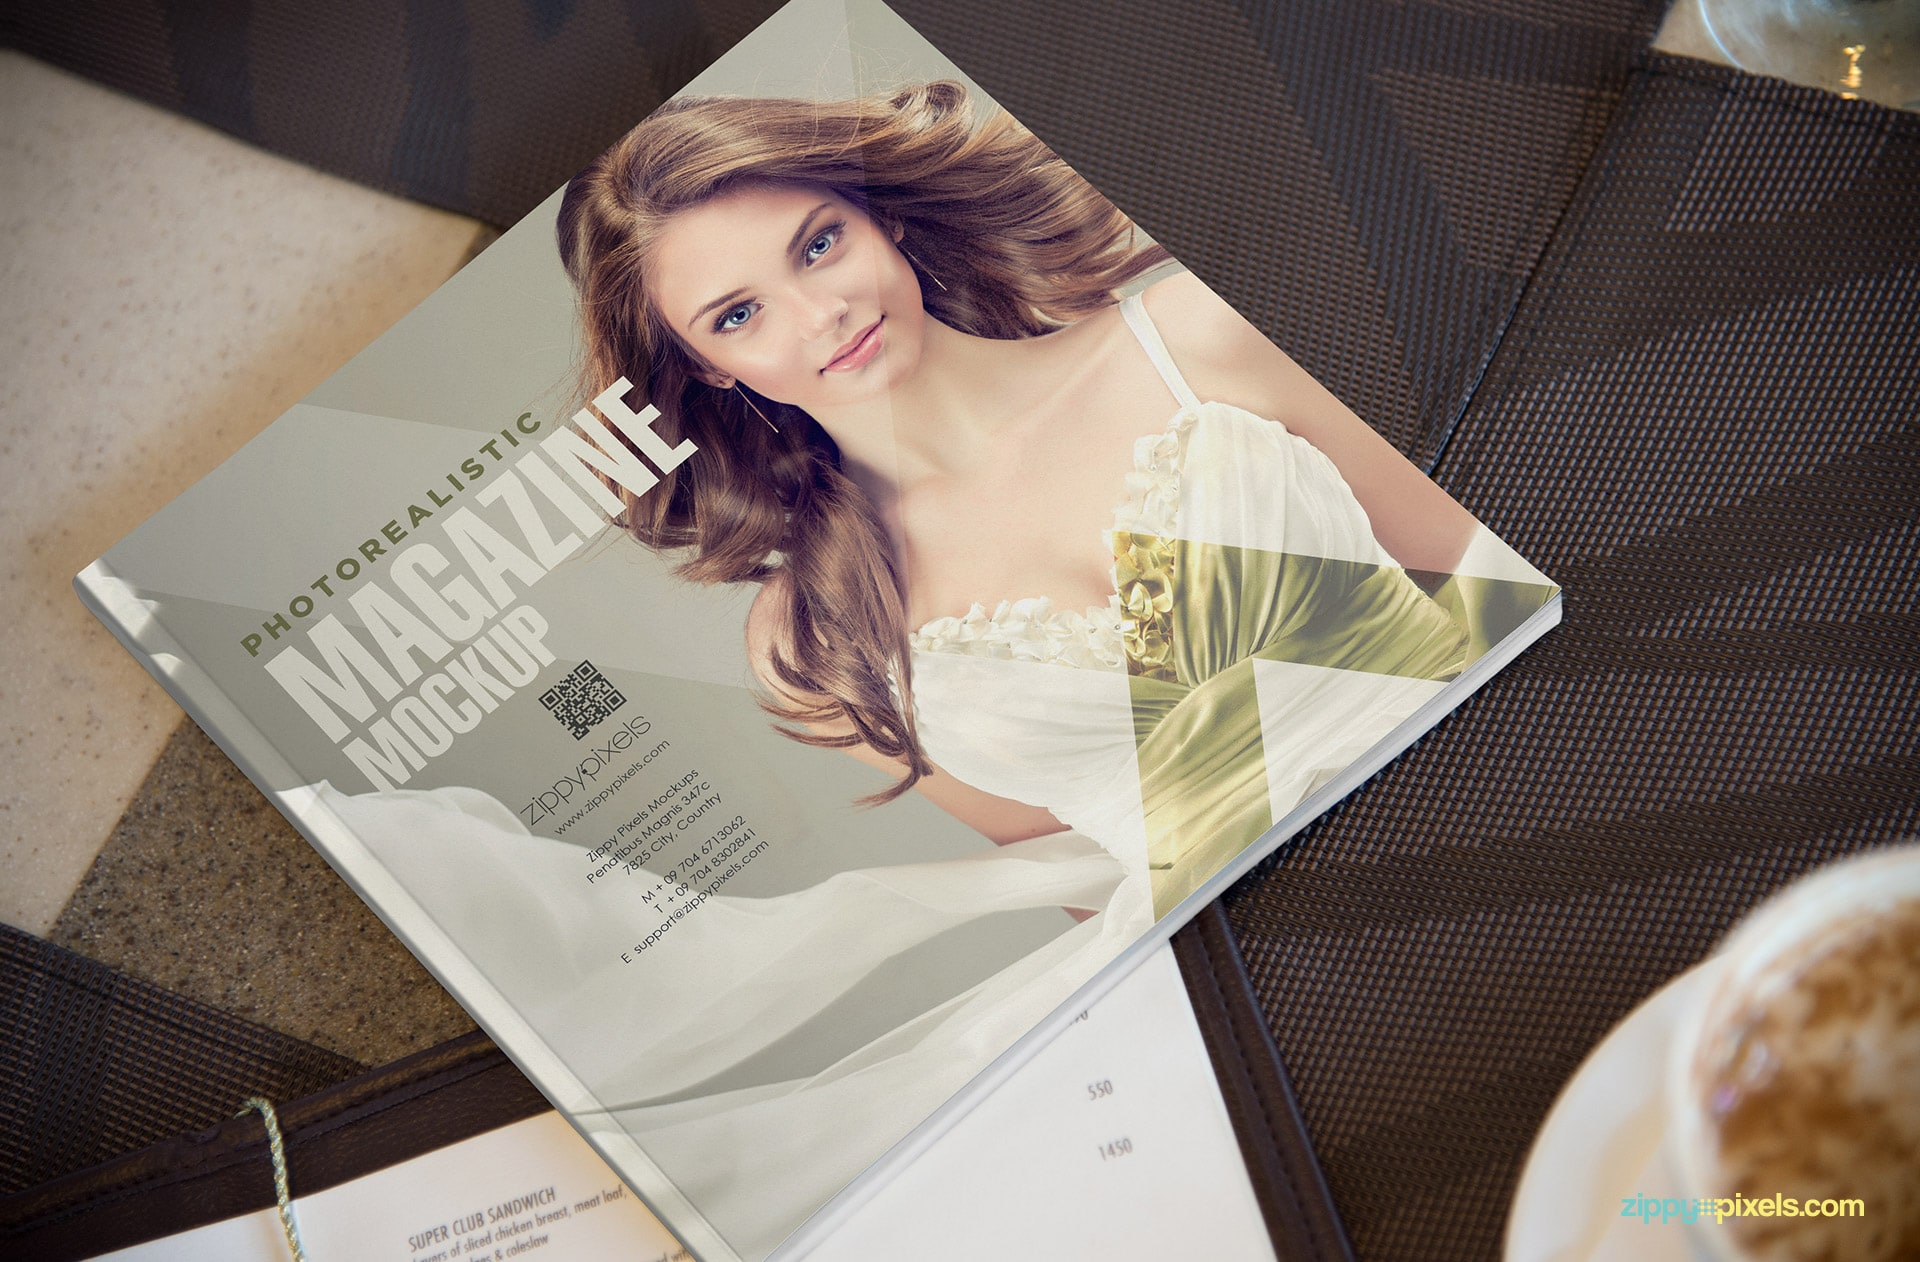 unique square shaped magazine mockup with gloss effect